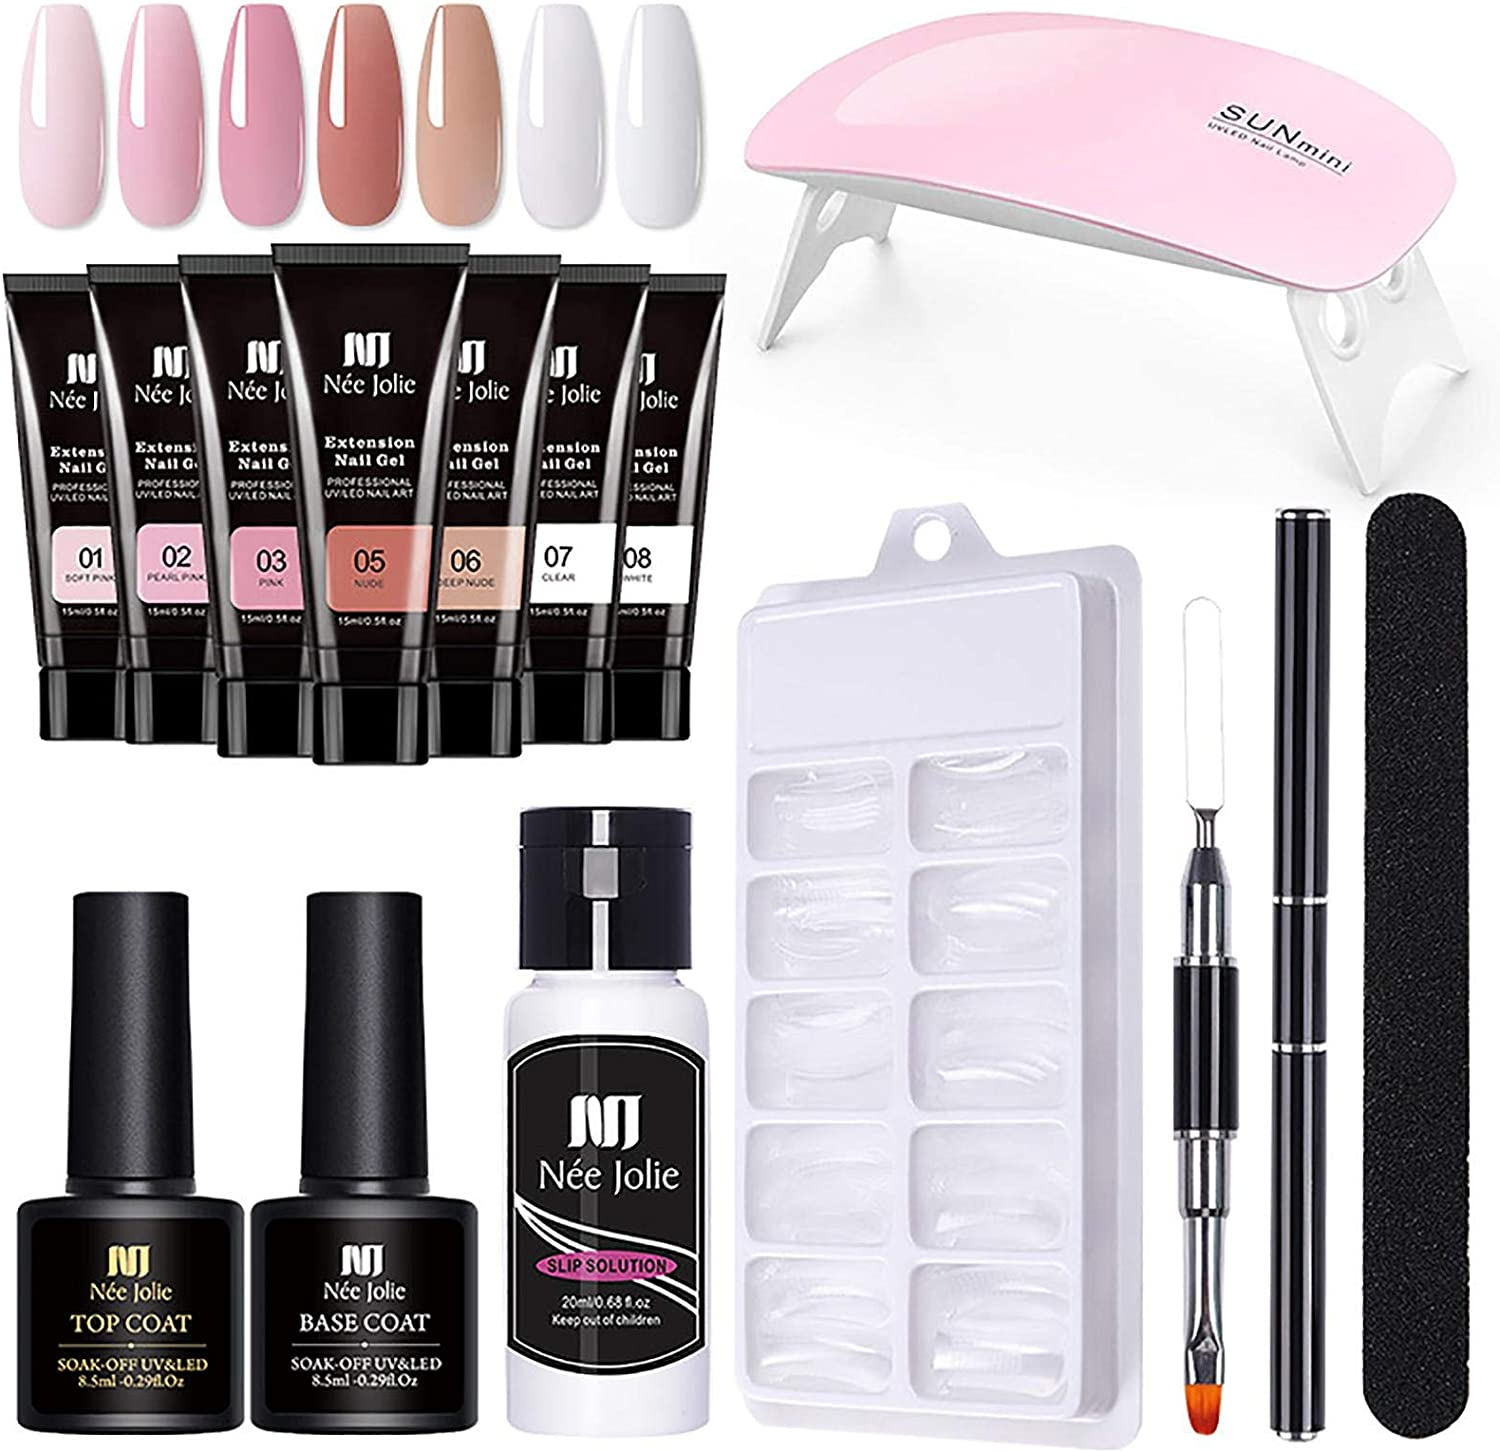 Tuaha Great interest Nail Gel Set with Starter Kit Mesa Mall Extension